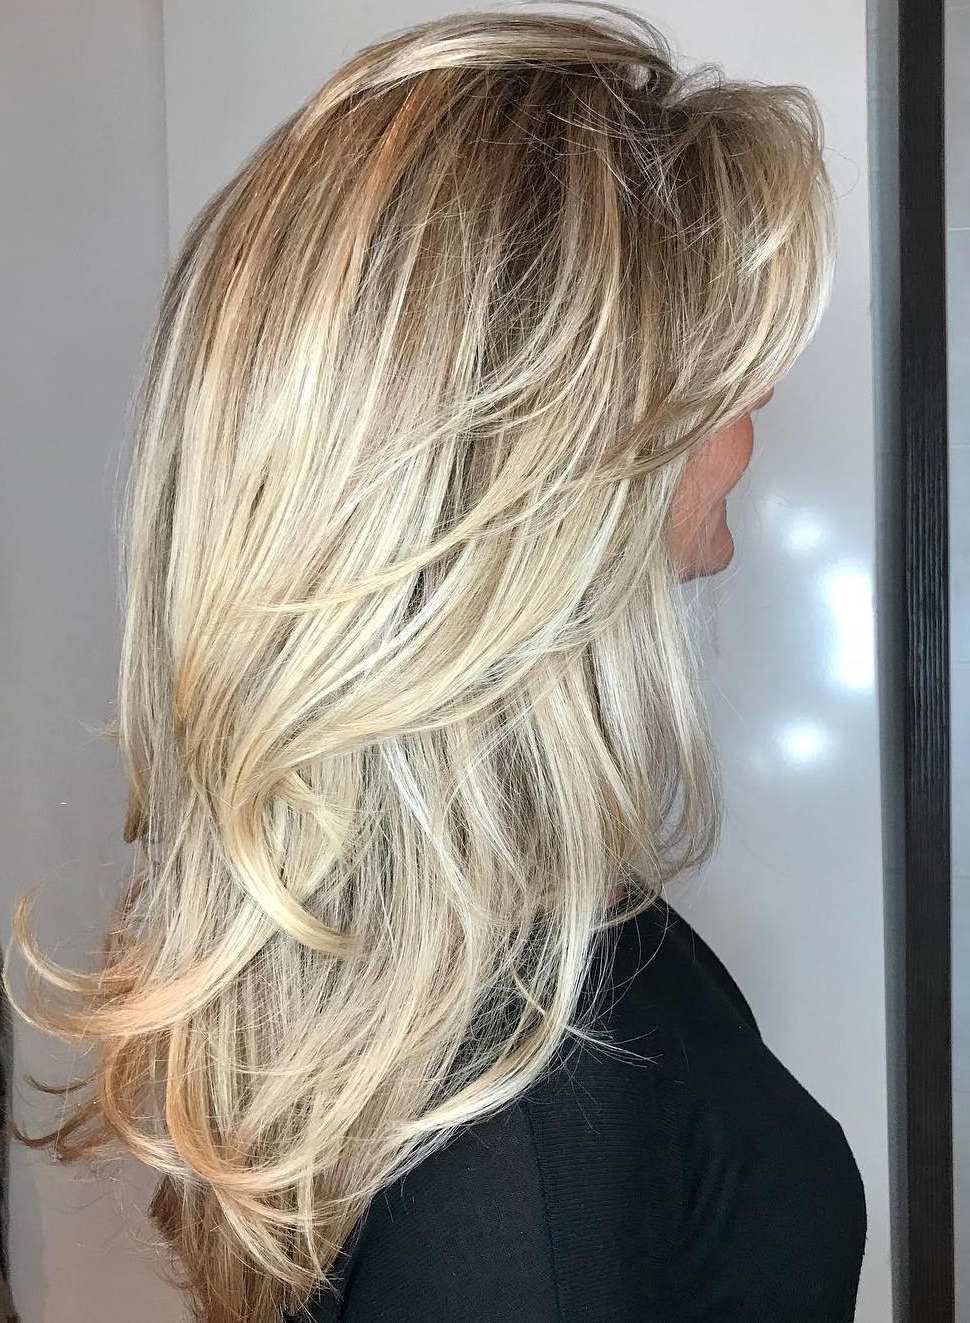 Famous Long Layered Waves And Cute Bangs Hairstyles Inside 50 Cute Long Layered Haircuts With Bangs  (View 10 of 20)